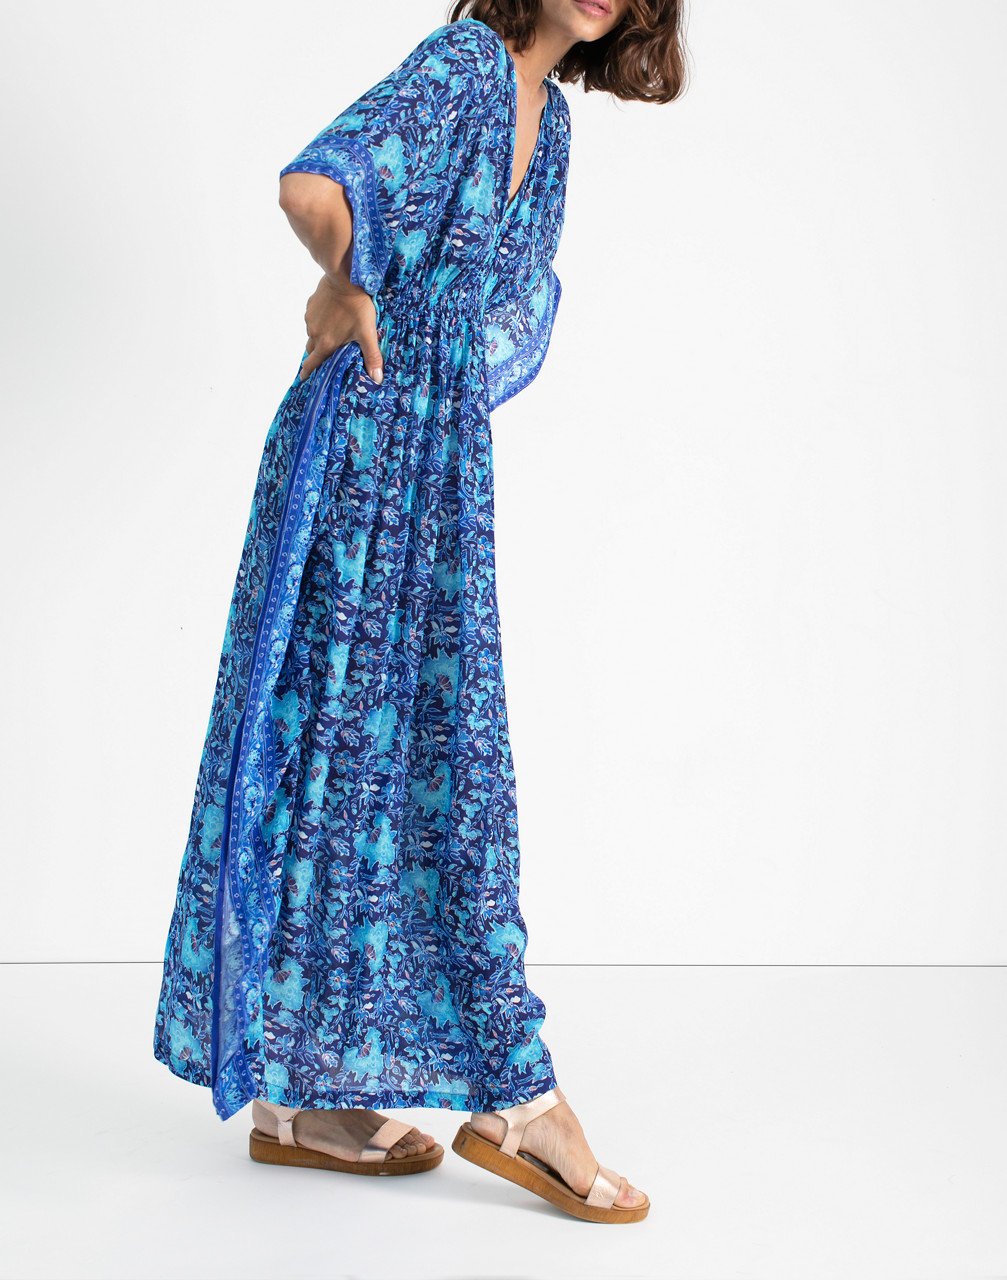 Cottagecore Dresses Aesthetic, Granny, Vintage rujuta sheth Marie Cinch Kaftan Dress $119.97 AT vintagedancer.com